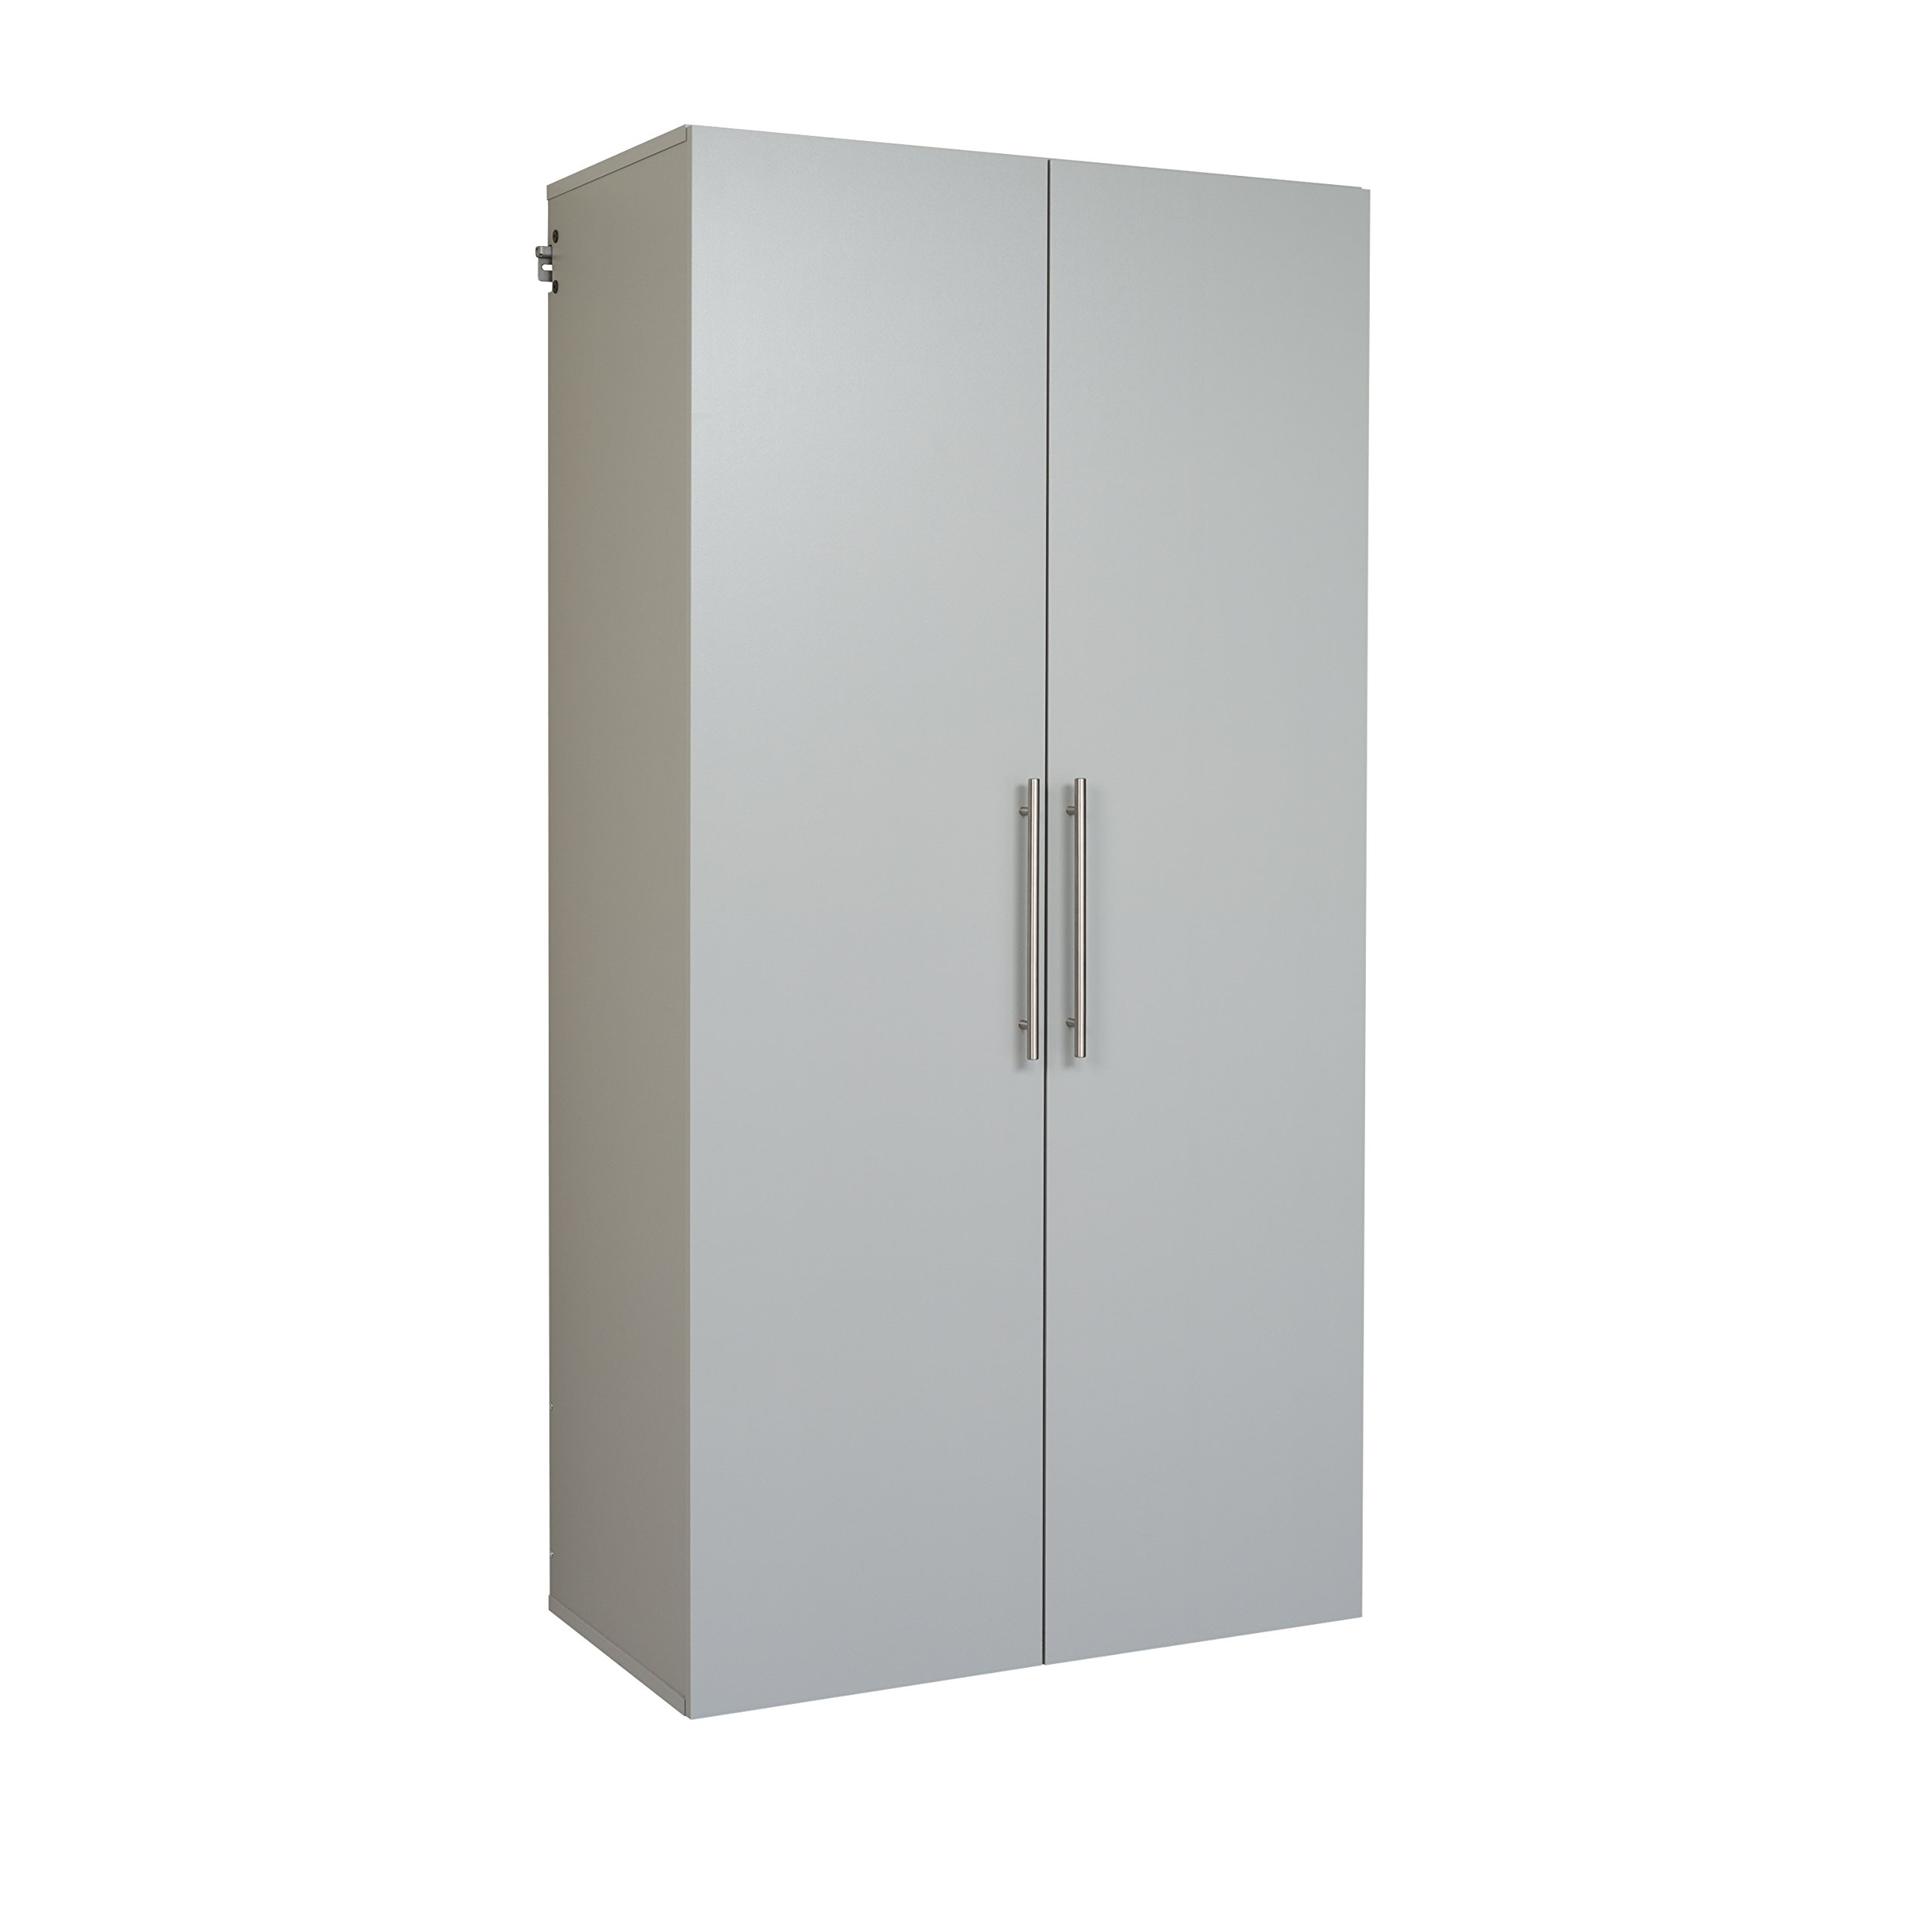 Prepac GSCW-0708-2K Hang-Ups Storage Cabinet, 36''/Large, Light Gray by Prepac